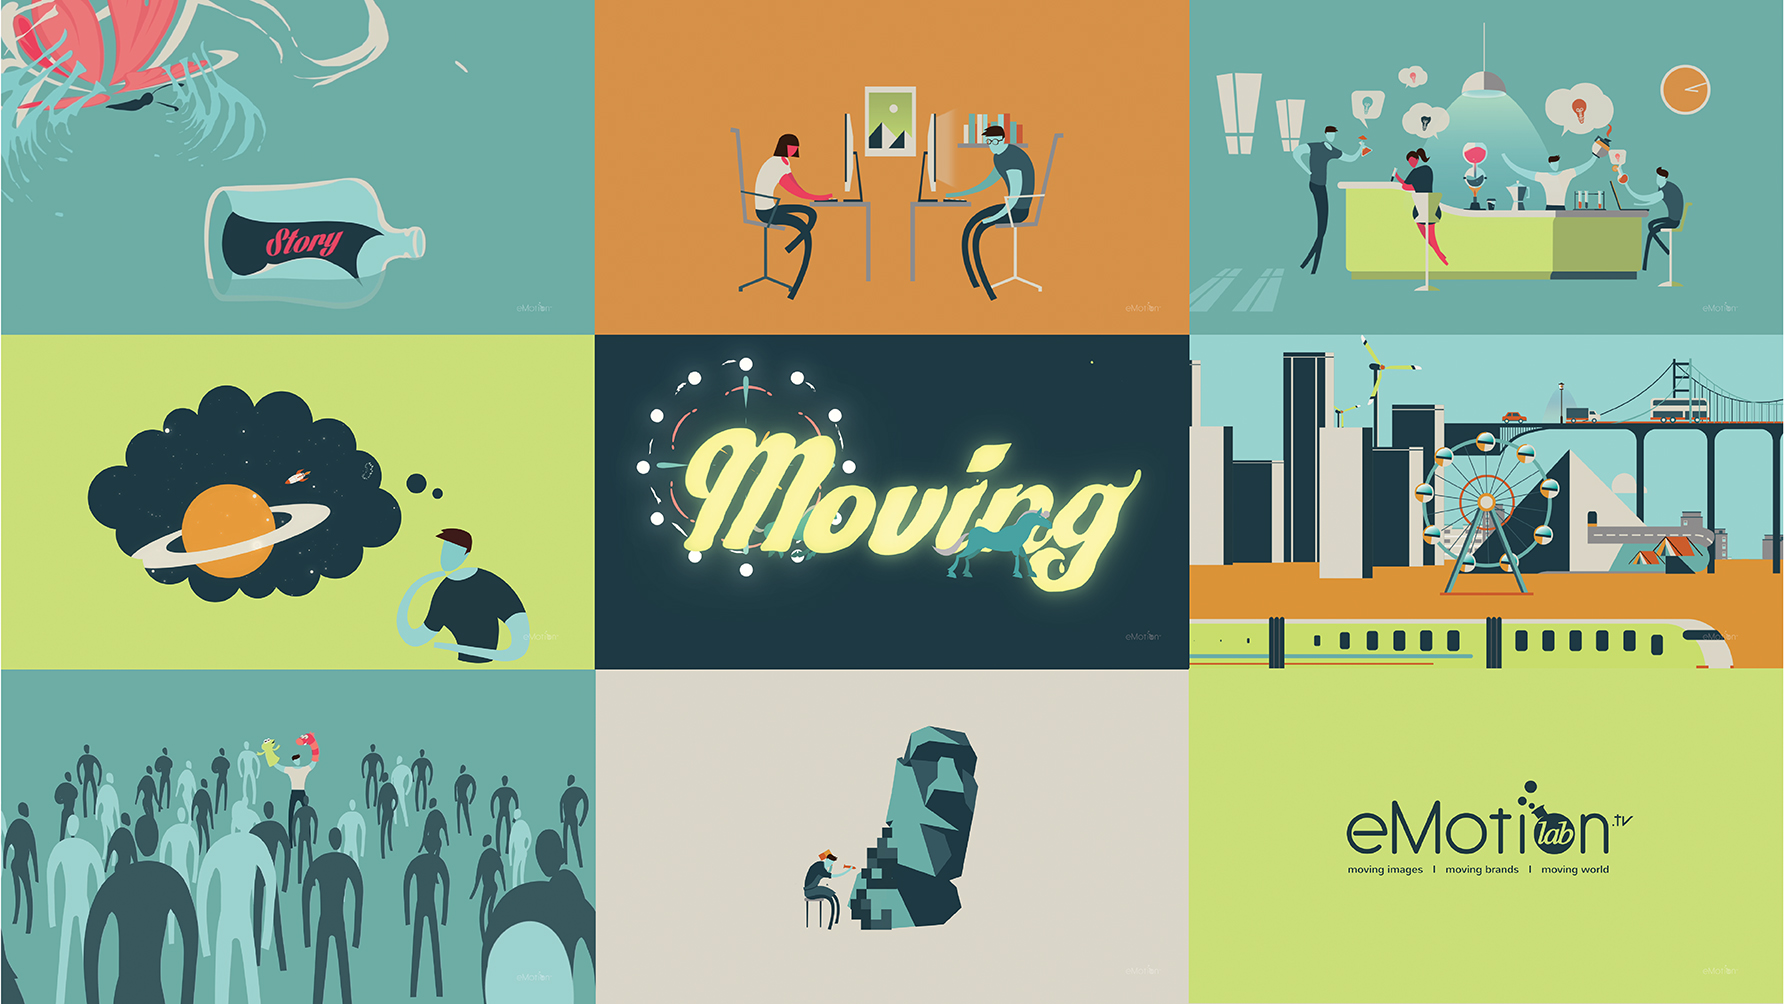 Animation Production Hong Kong, Motion Graphics Design Hong Kong, Video Production Hong Kong